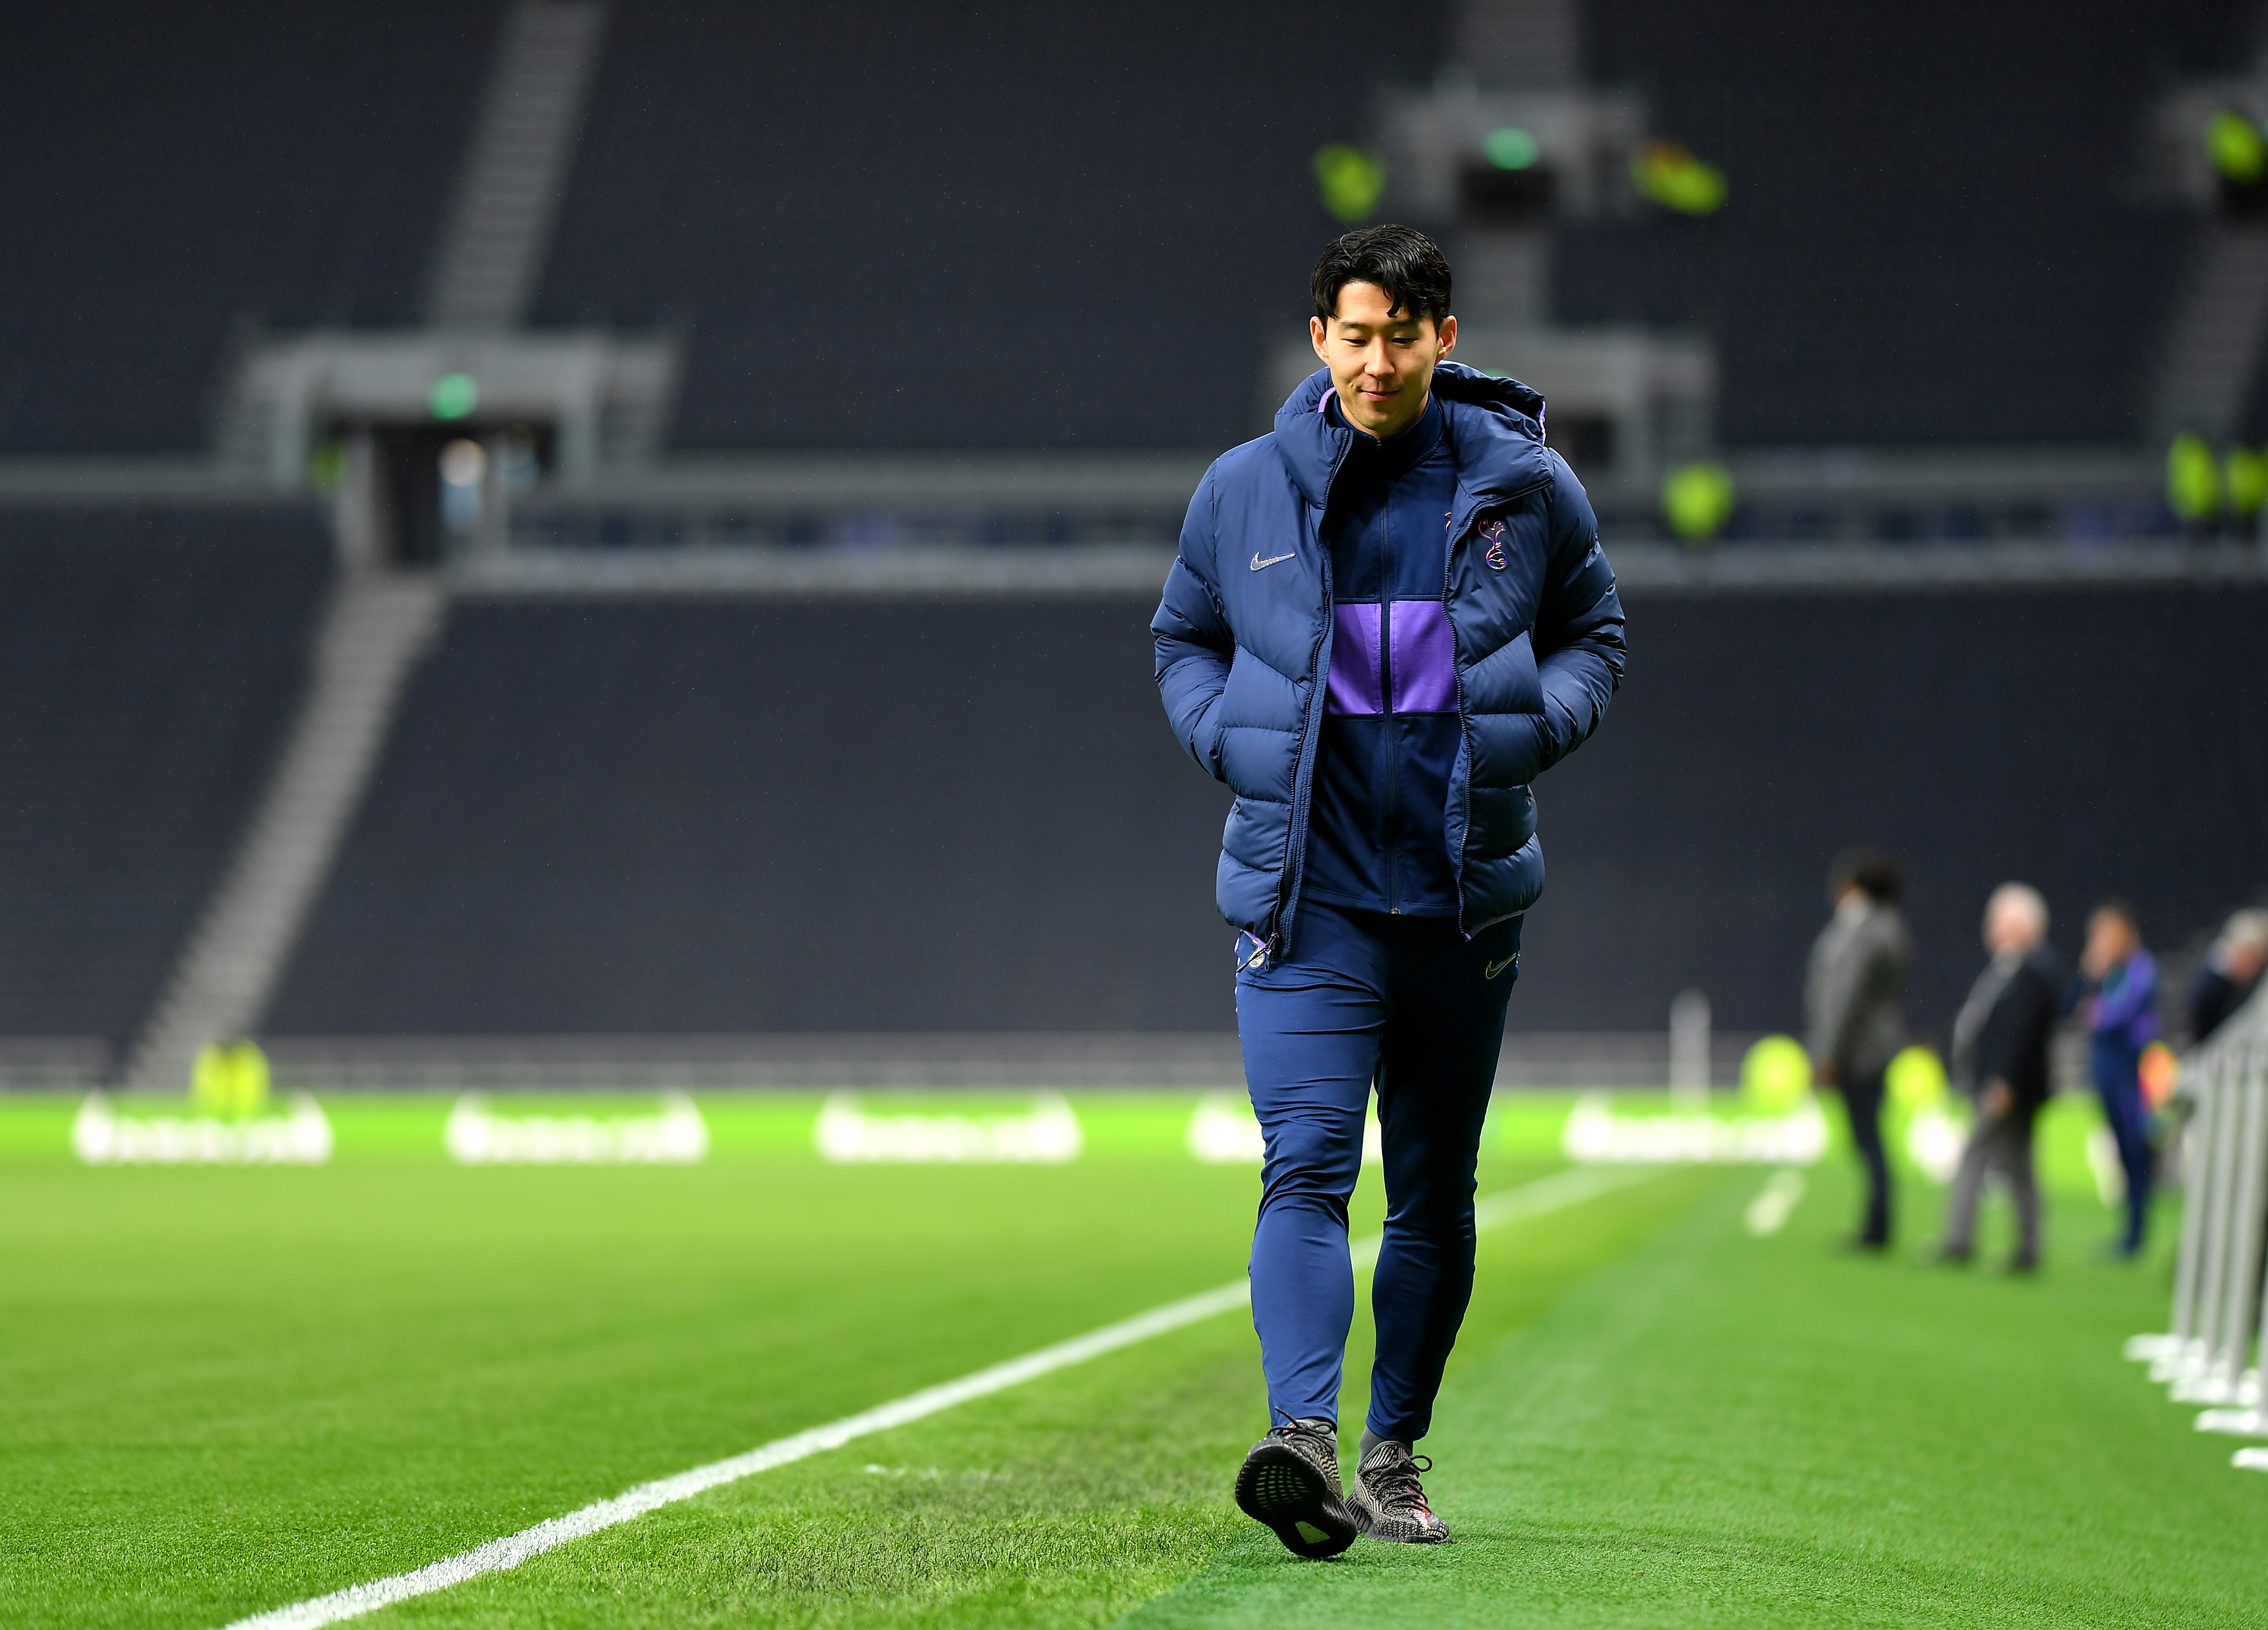 Son will be key for Tottenham (Photo by Justin Setterfield/Getty Images)